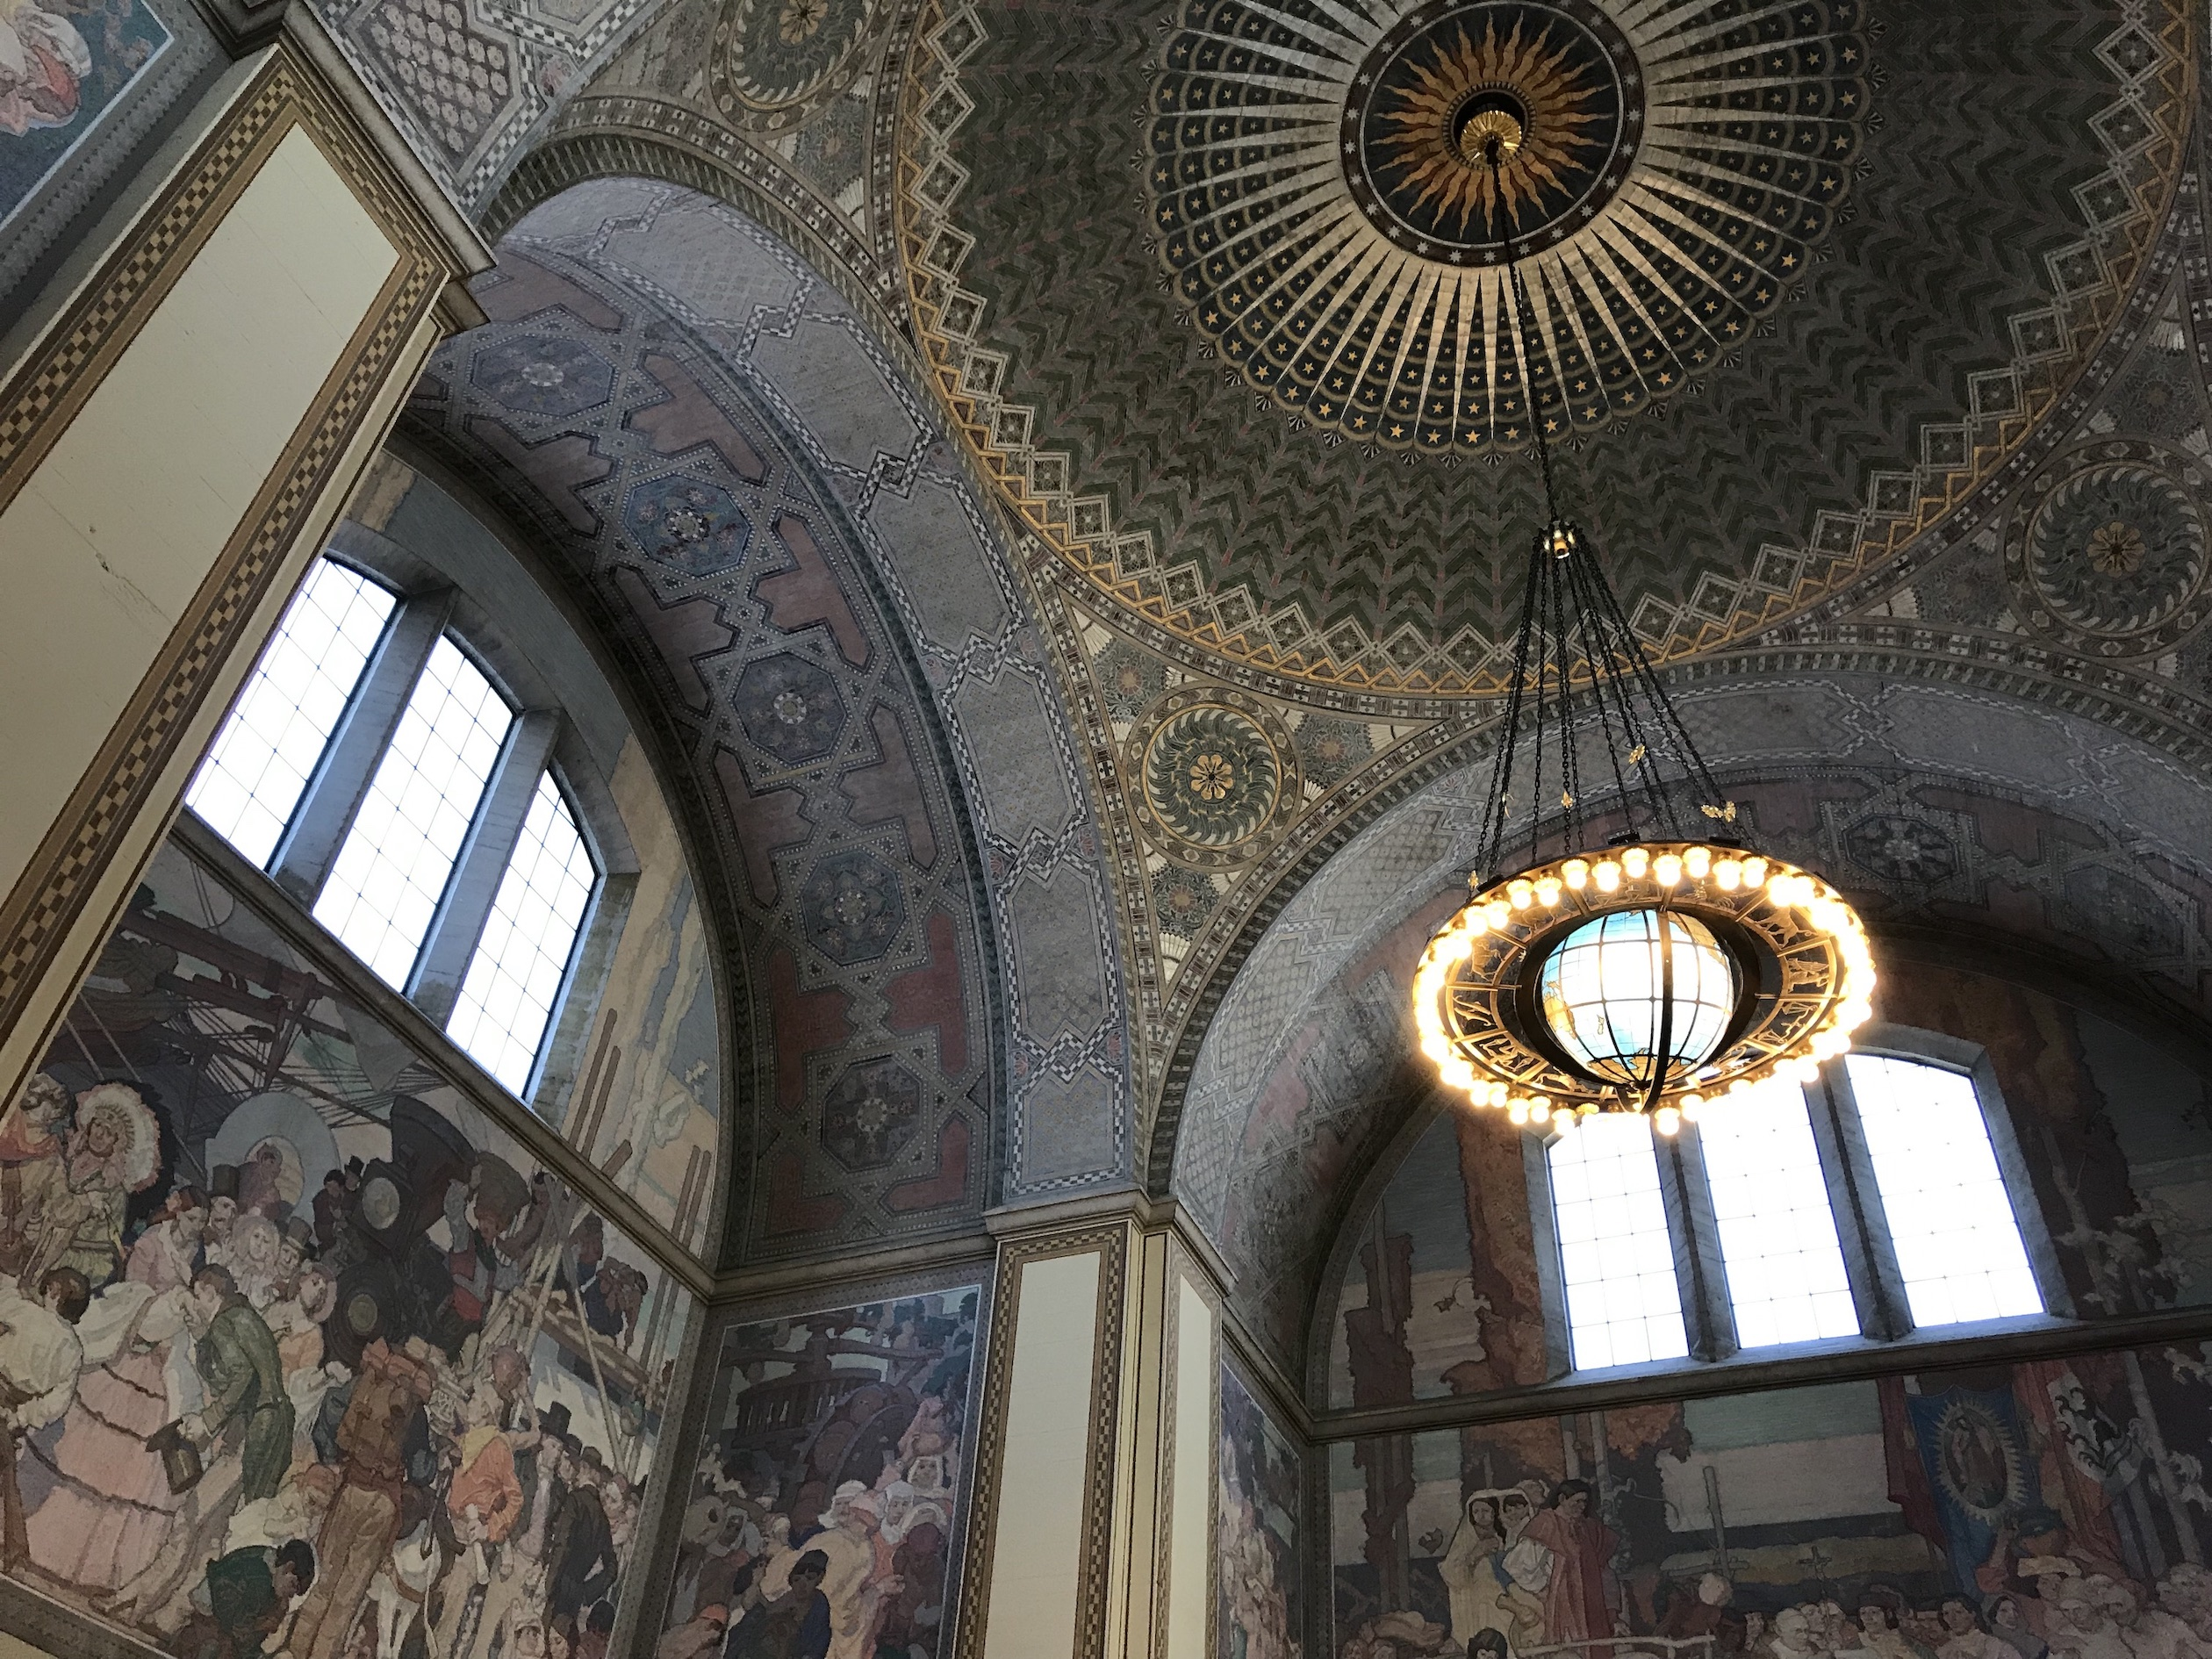 This space has a mosaic tile ceiling and a globe chandelier. Large windows provide lots of natural light